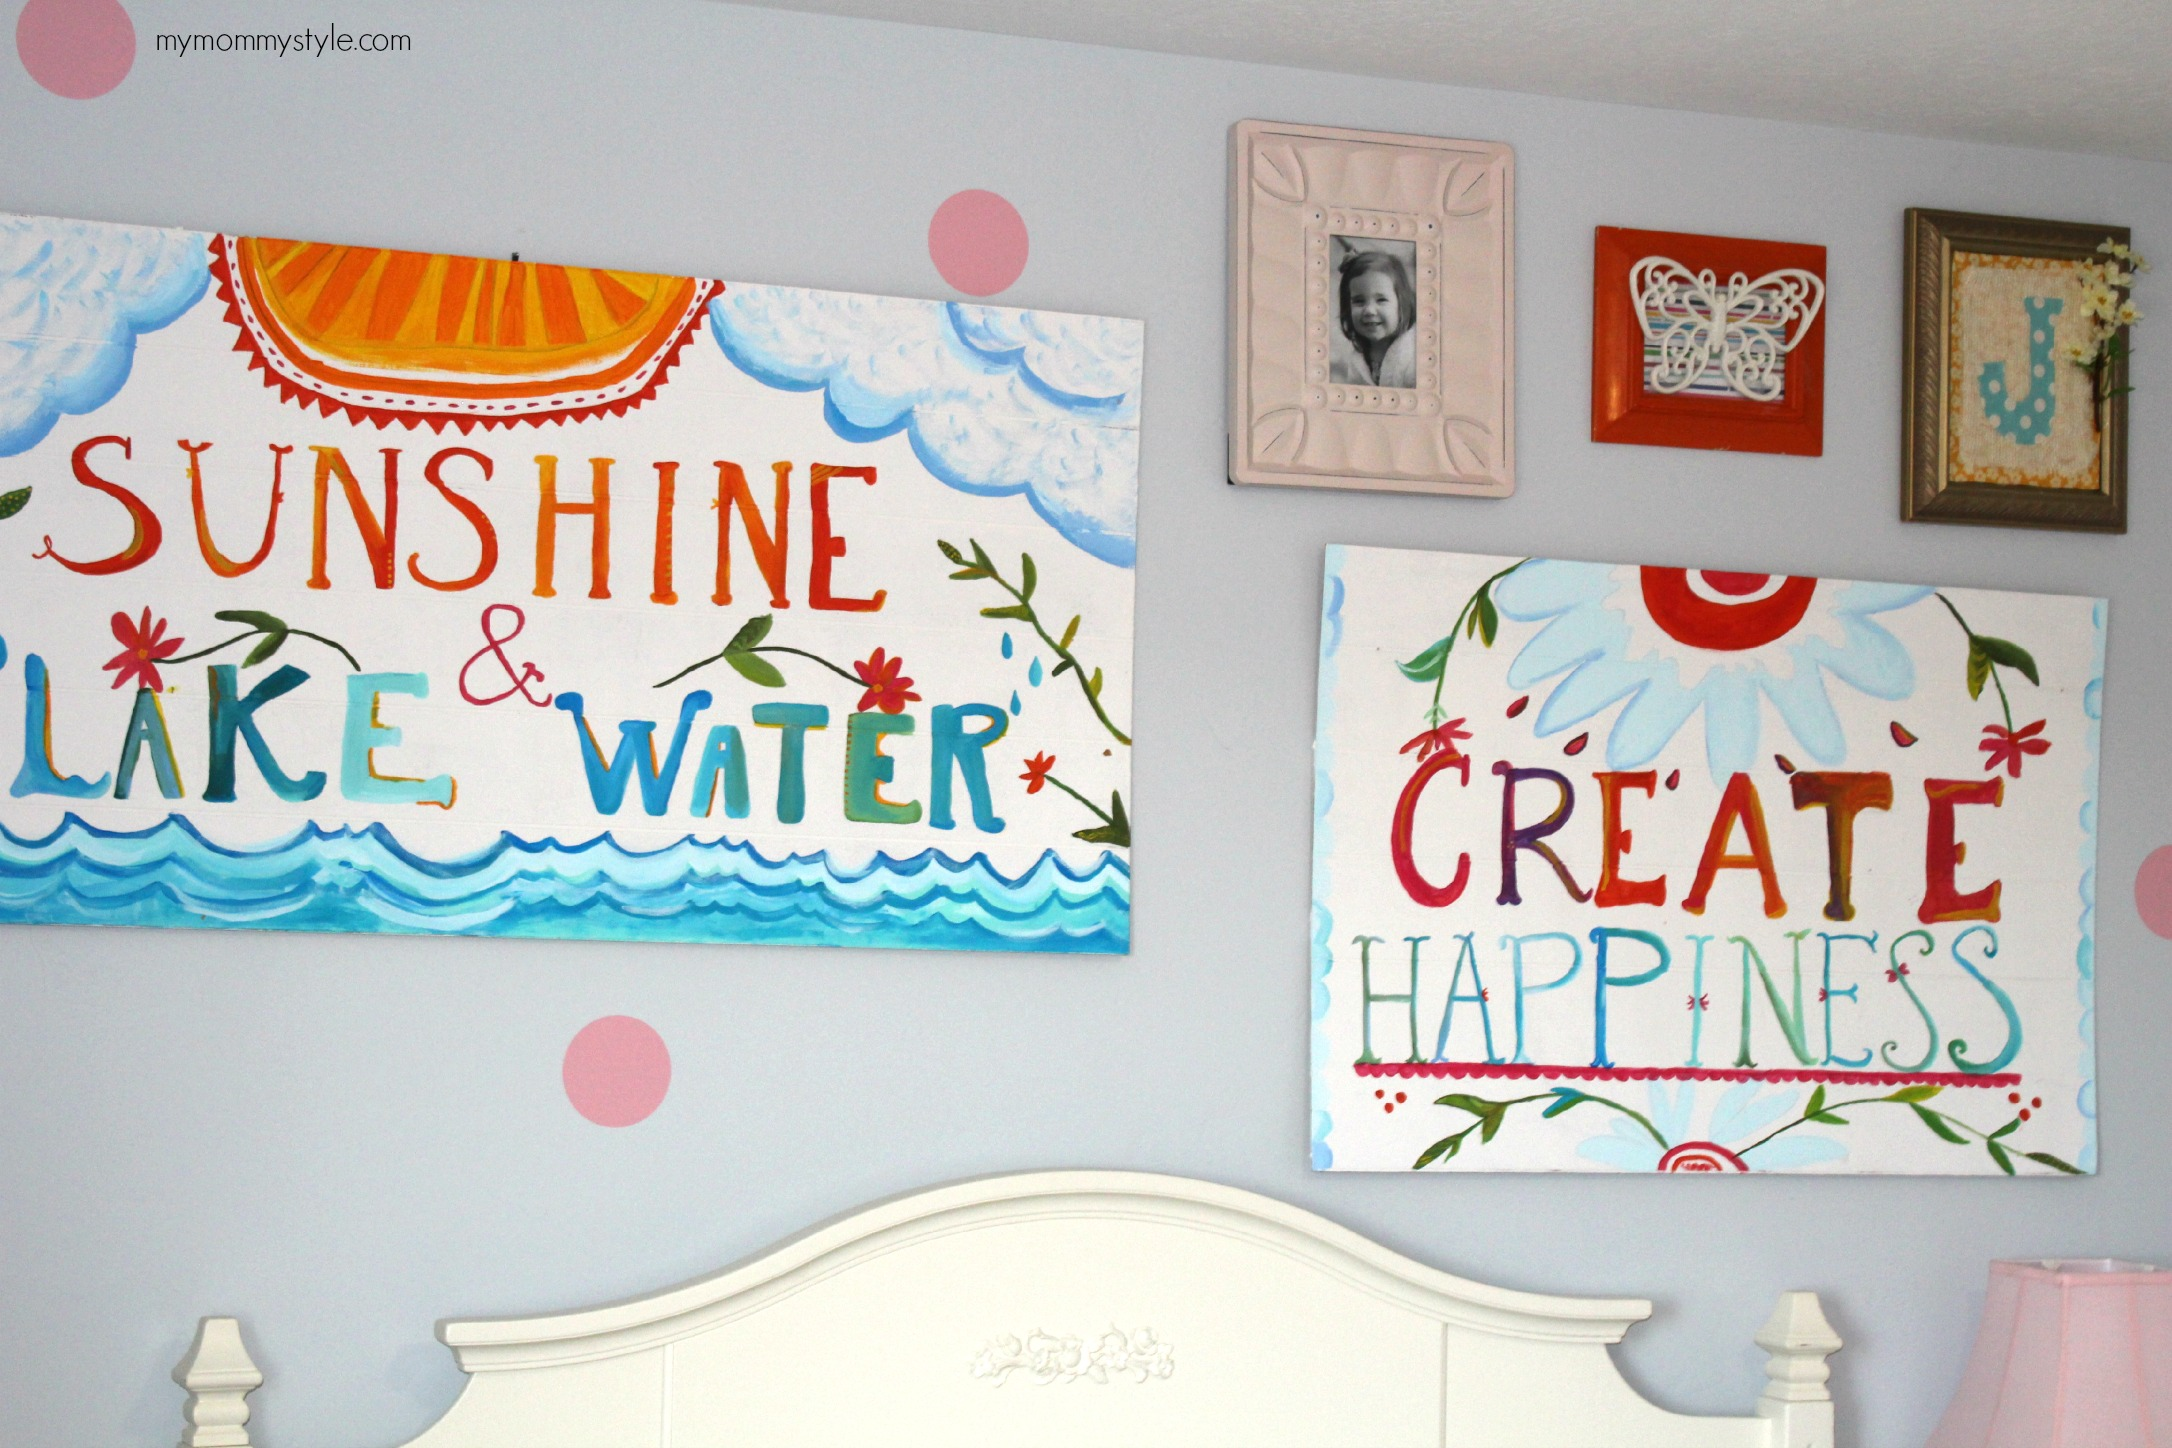 gallery wall art, mymommystyle.com, pottery barn,